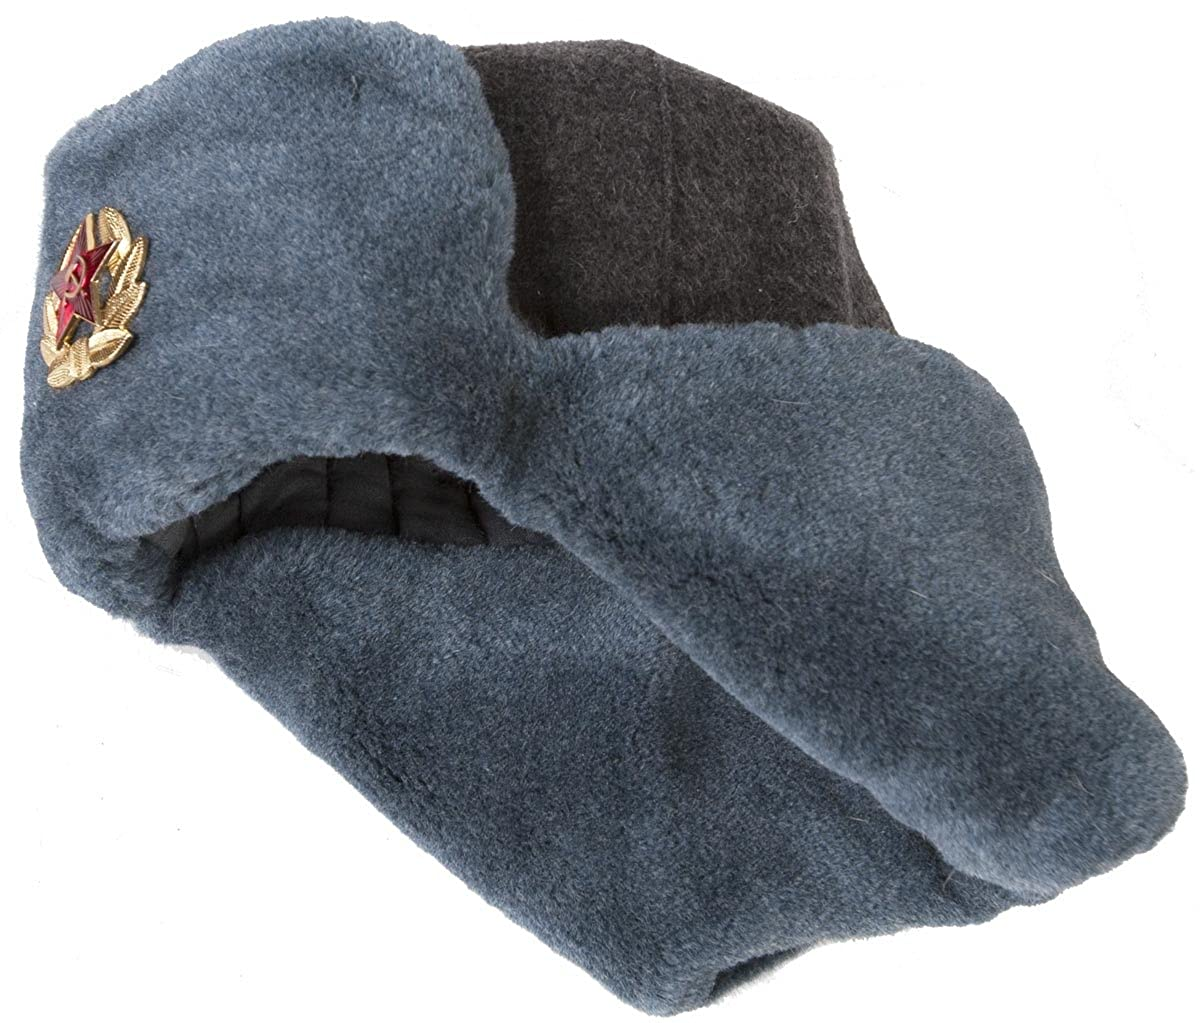 fee4148795e Amazon.com  Authentic Russian Army Ushanka Winter Hat